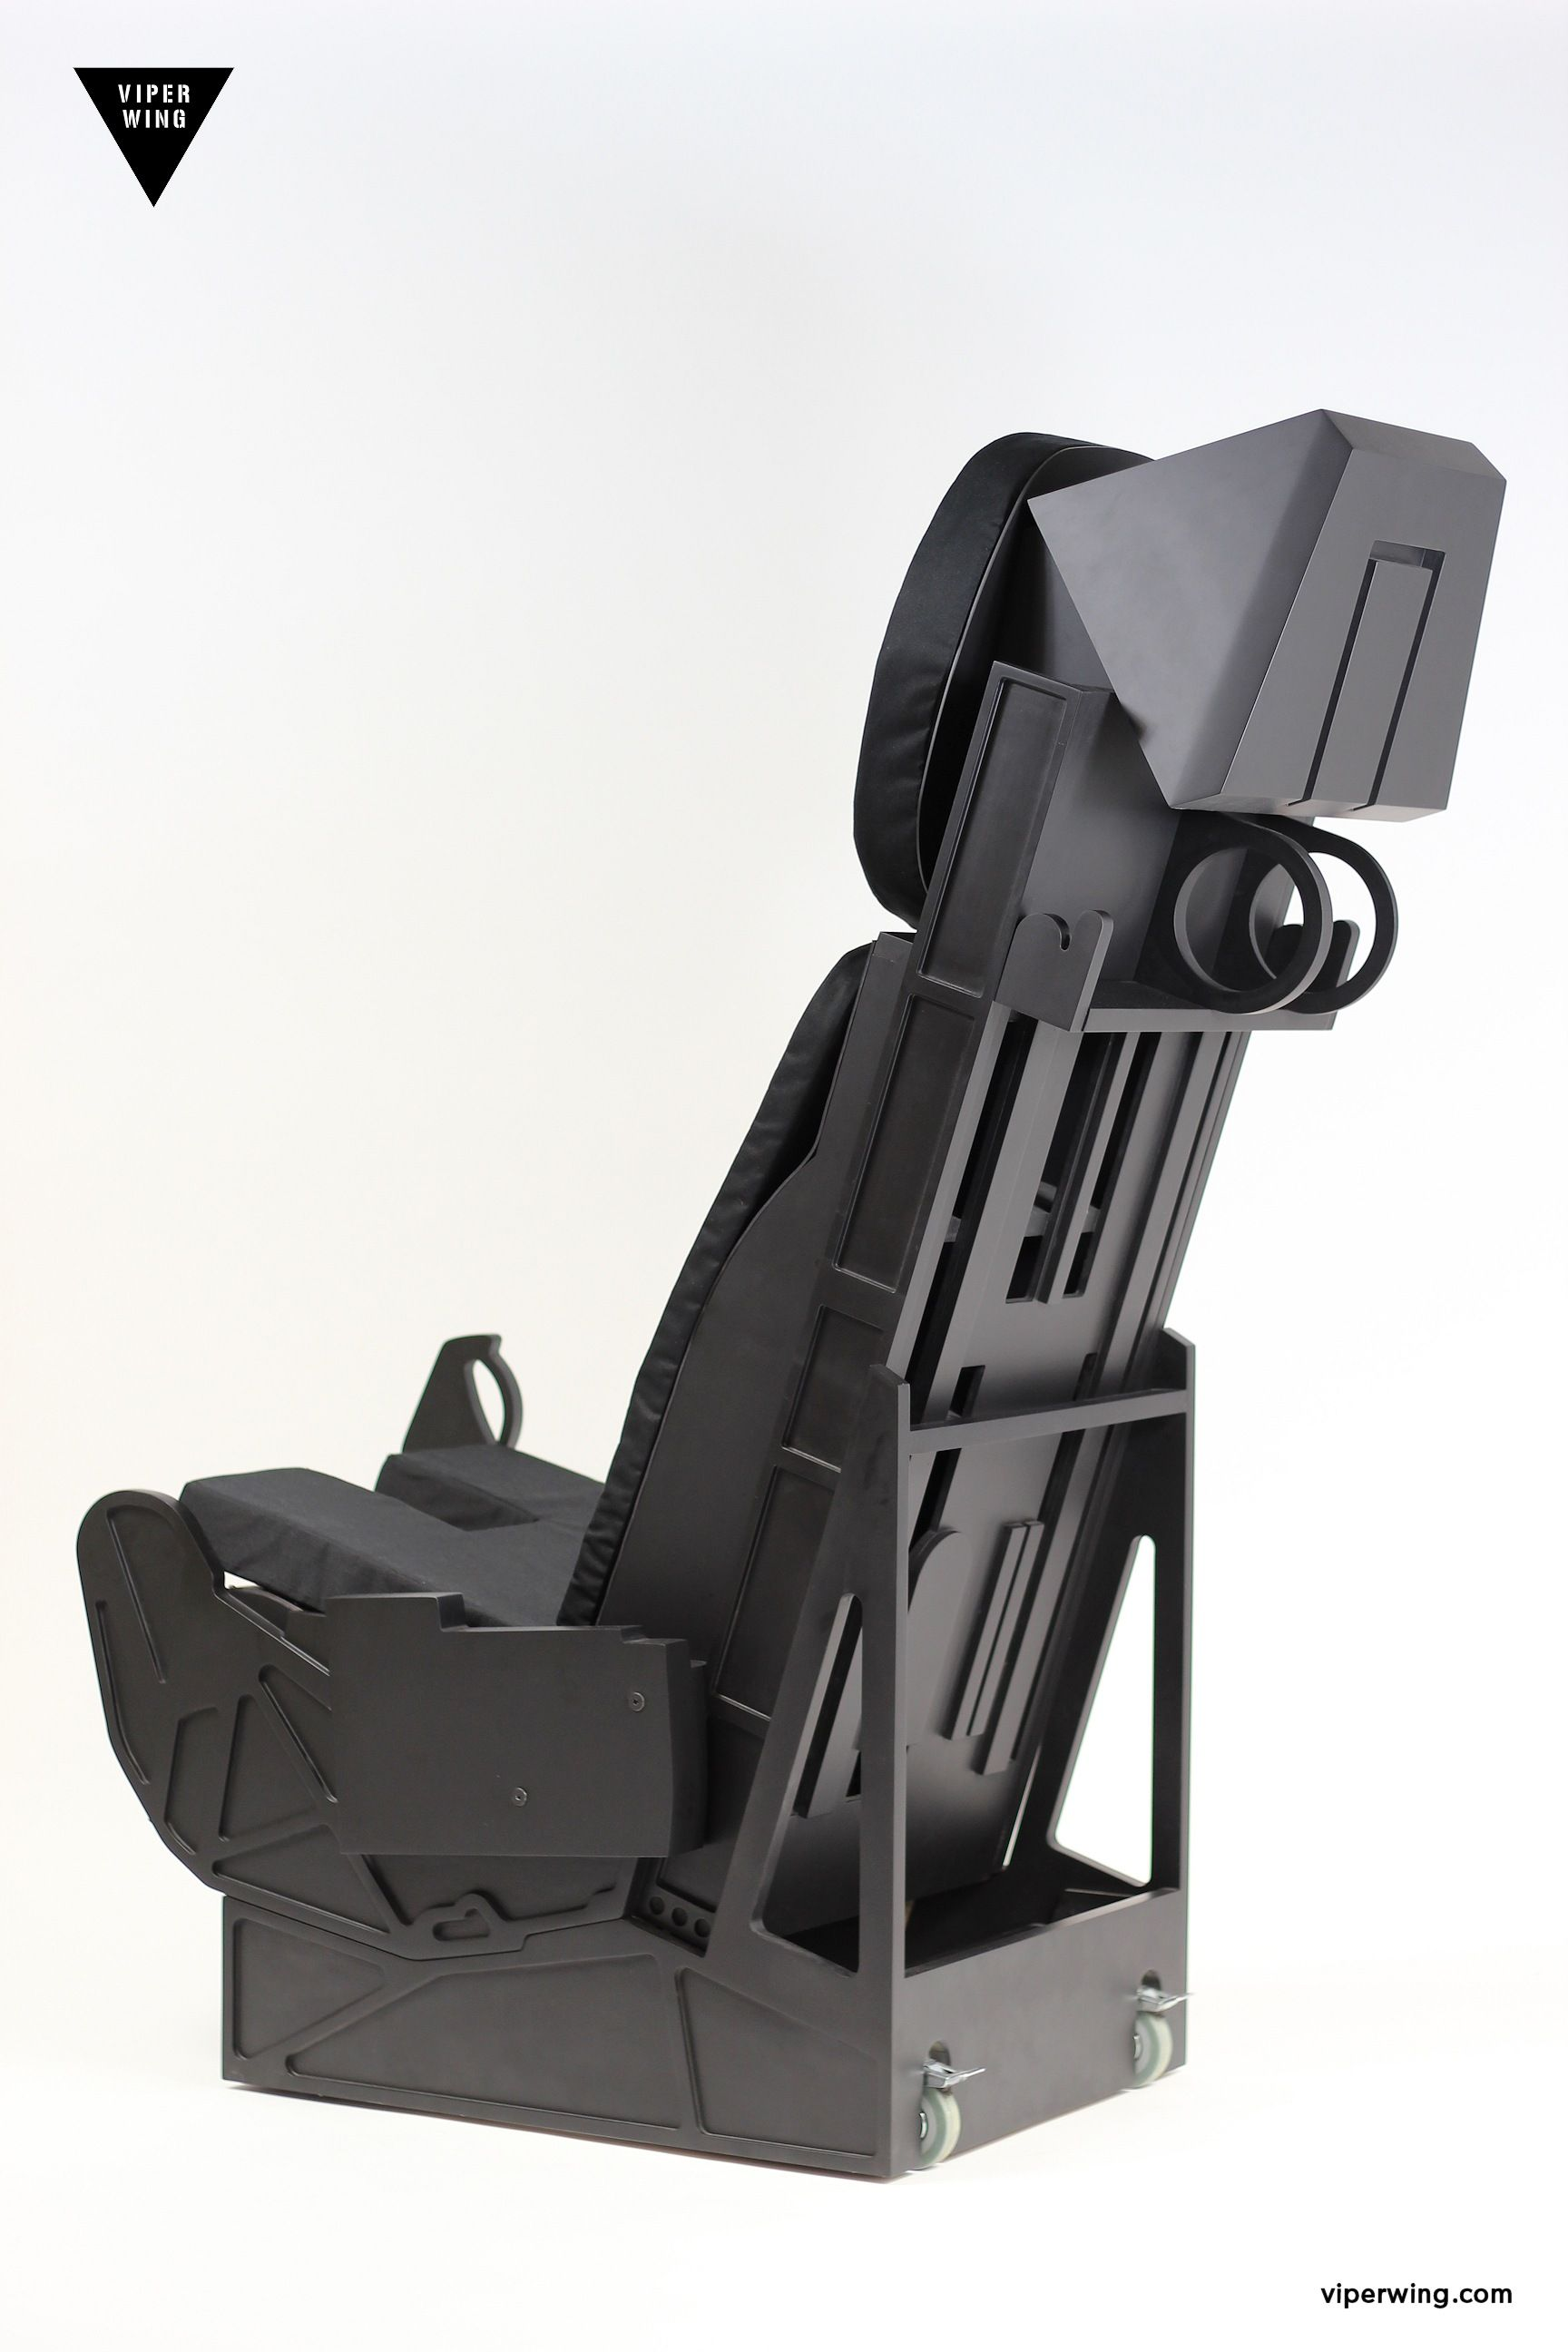 Ejection Seat Office Chair Wedding Wooden Chairs F 35 Inspired Available Now At Www